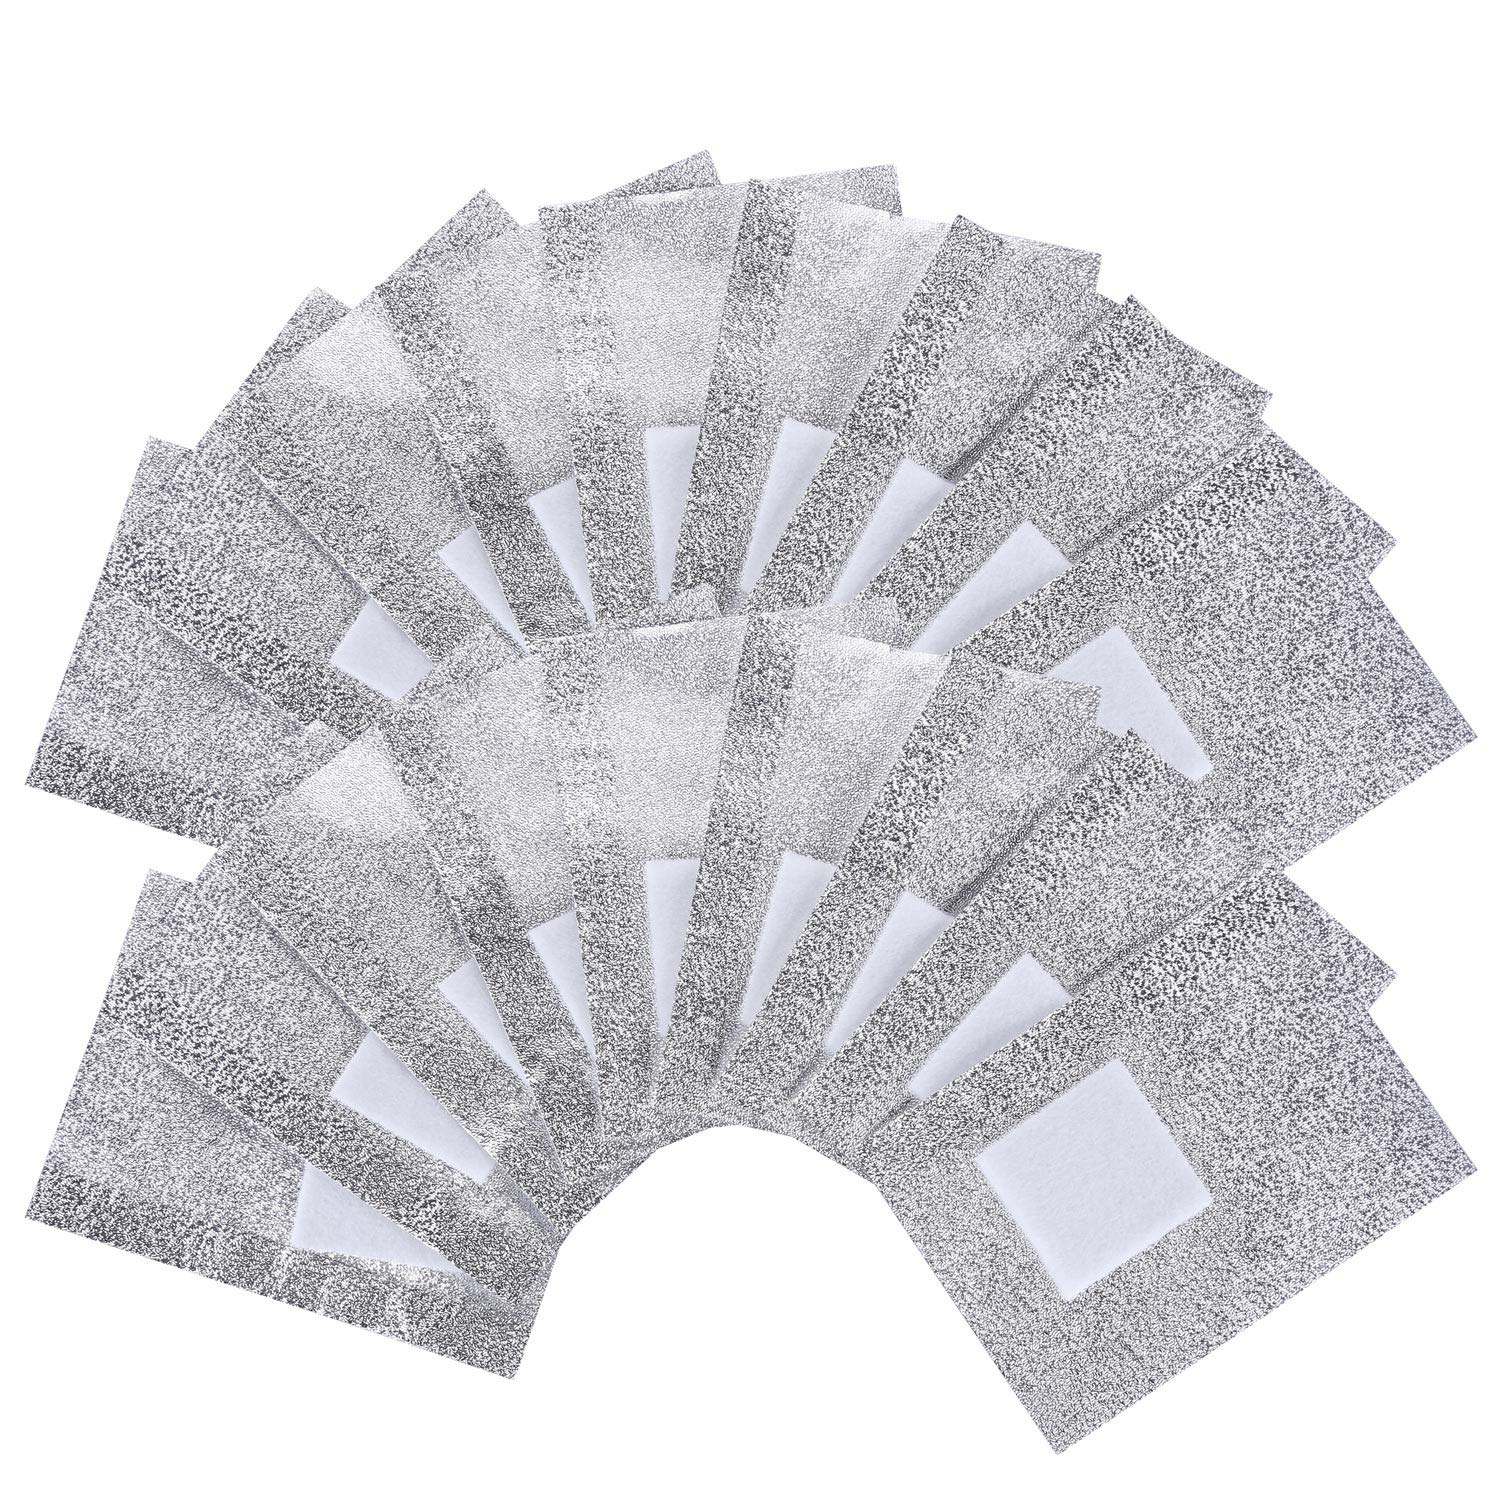 BTYMS 400 Pcs Nail Polish Remover Nail Foil Wraps Nail Gel Remover Soak Off Foils Cotton Pads Acrylic Removal Wraps by BTYMS